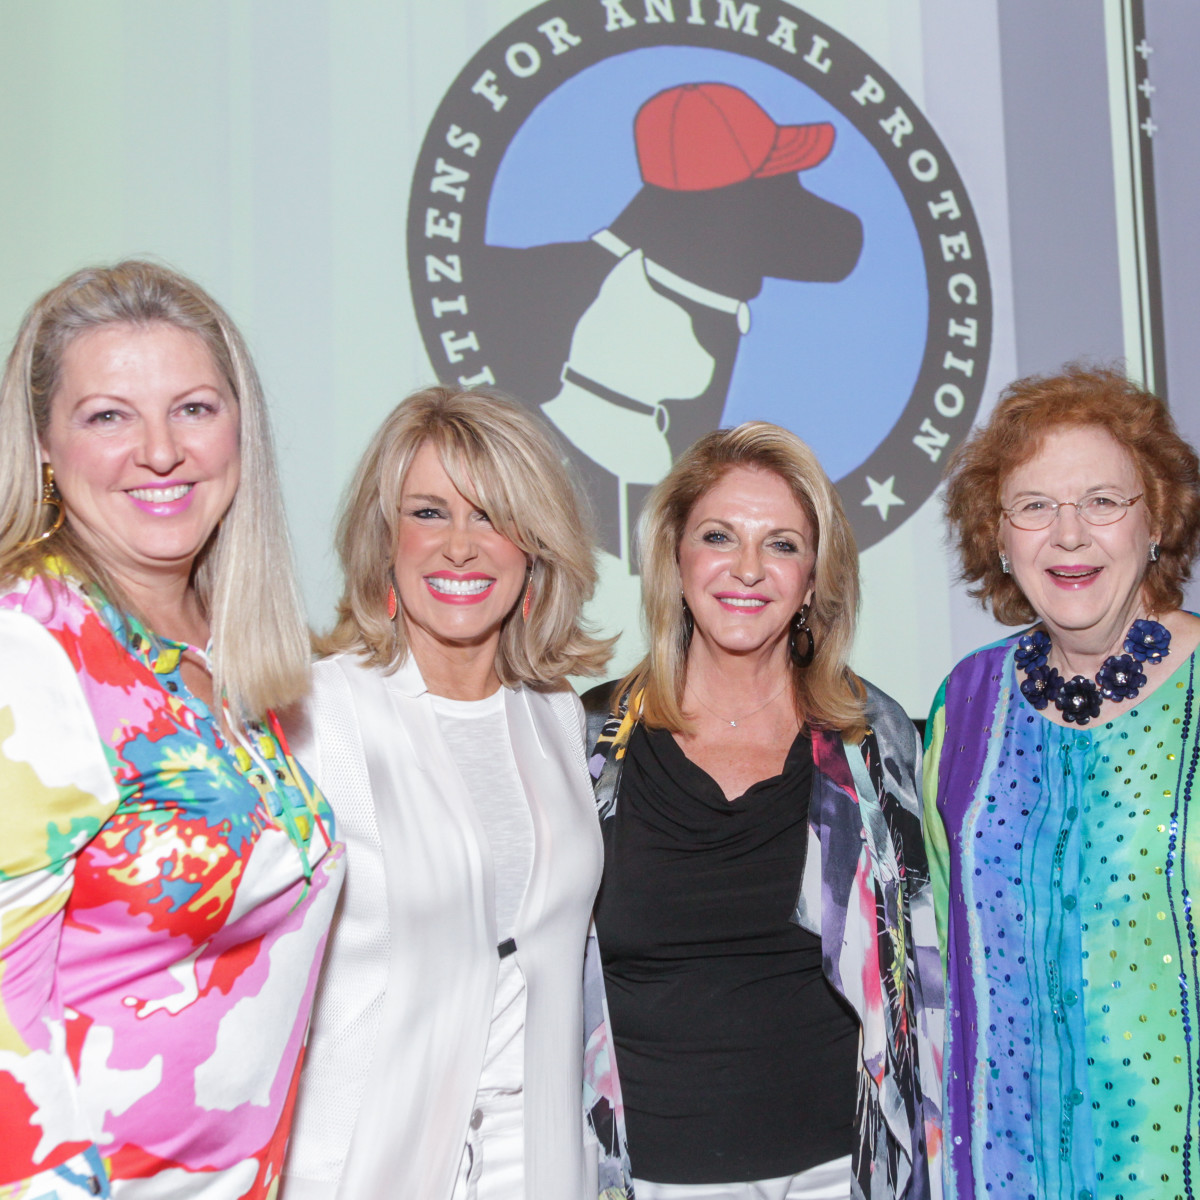 News, Shelby, Citizens for Animal Protection Paint Jam, June 2015, Gaylon Gullquist, Janice Hall, Francie Willis, Kappy Muenzer